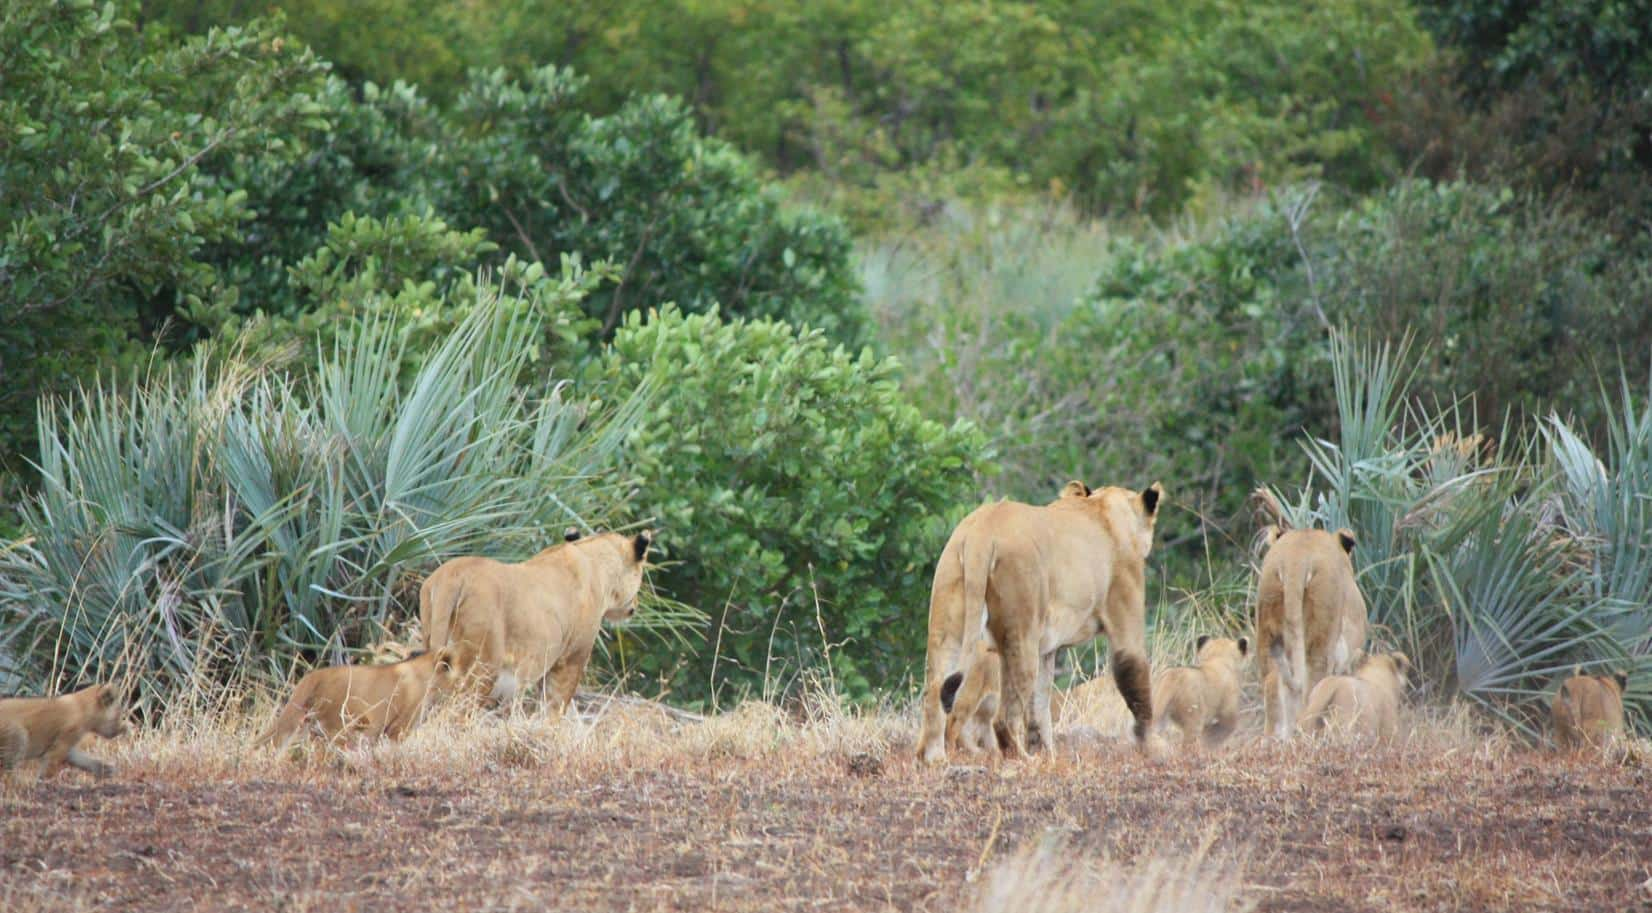 A quick glimpse of three lionesses with cubs.